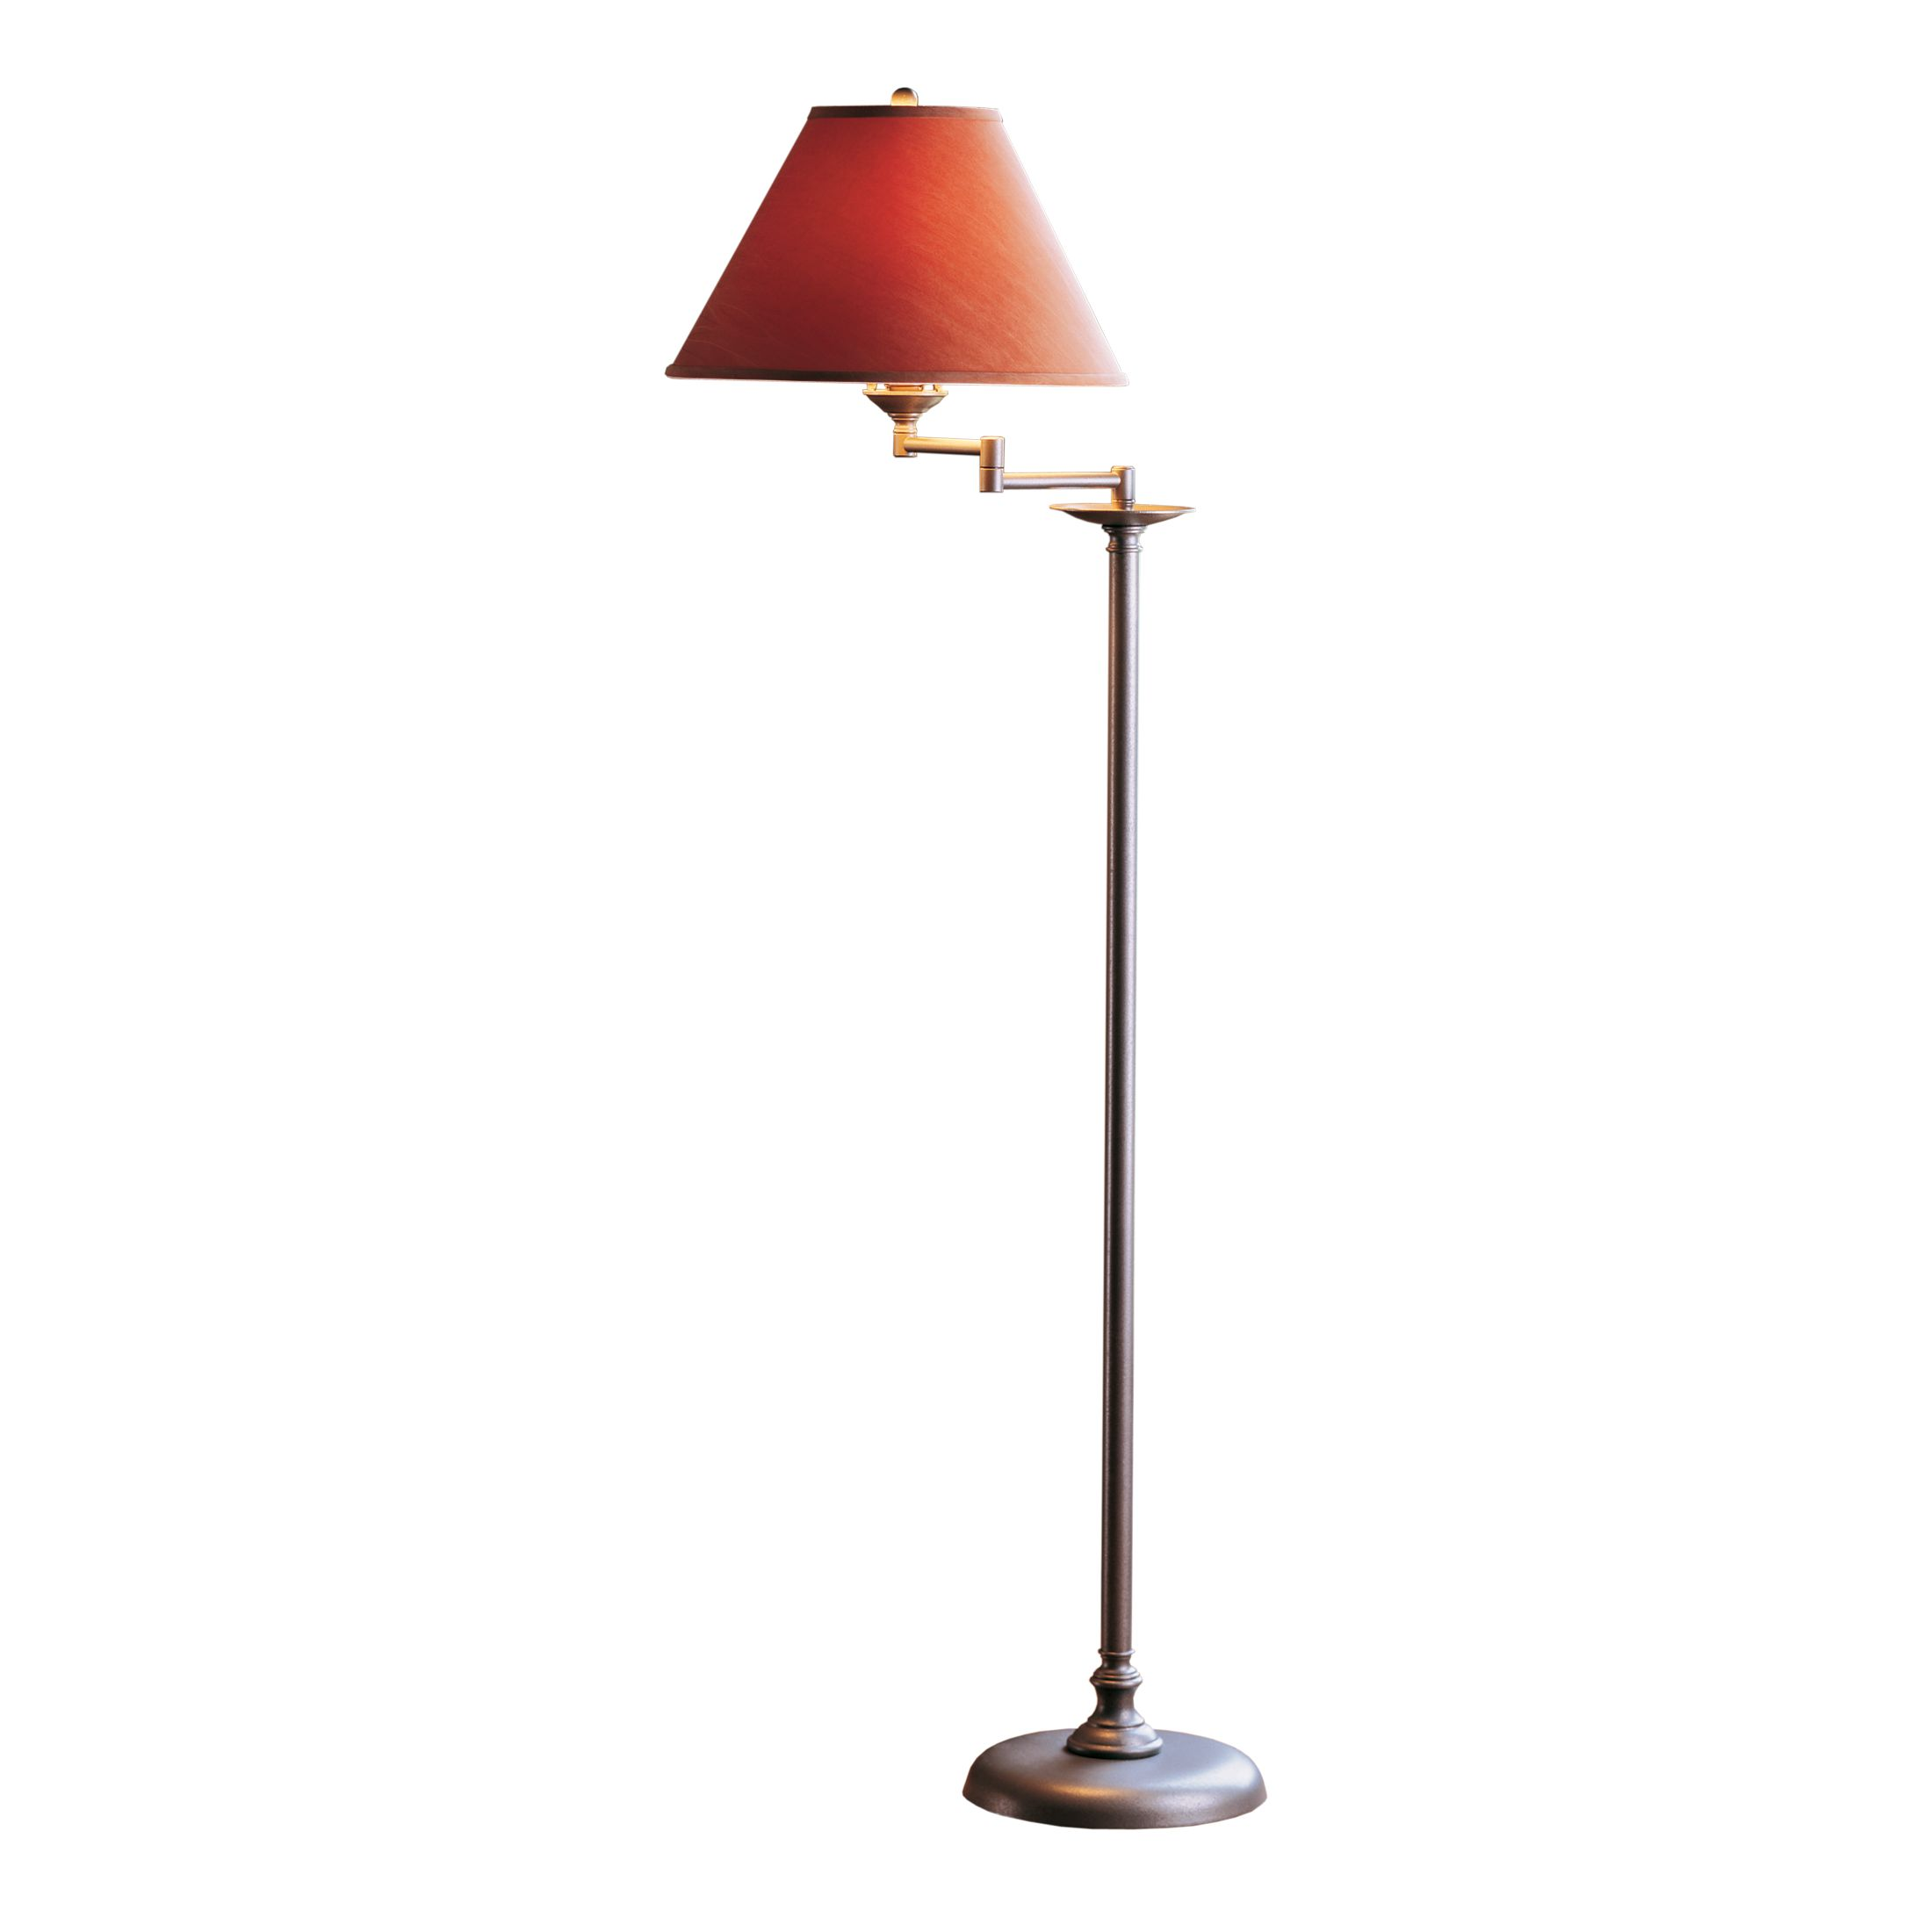 corner floor incandescent january luminaire reading portable s lamps tall company attached task magnificent lighting balance archives lamp arm pharmacy with fabulous light